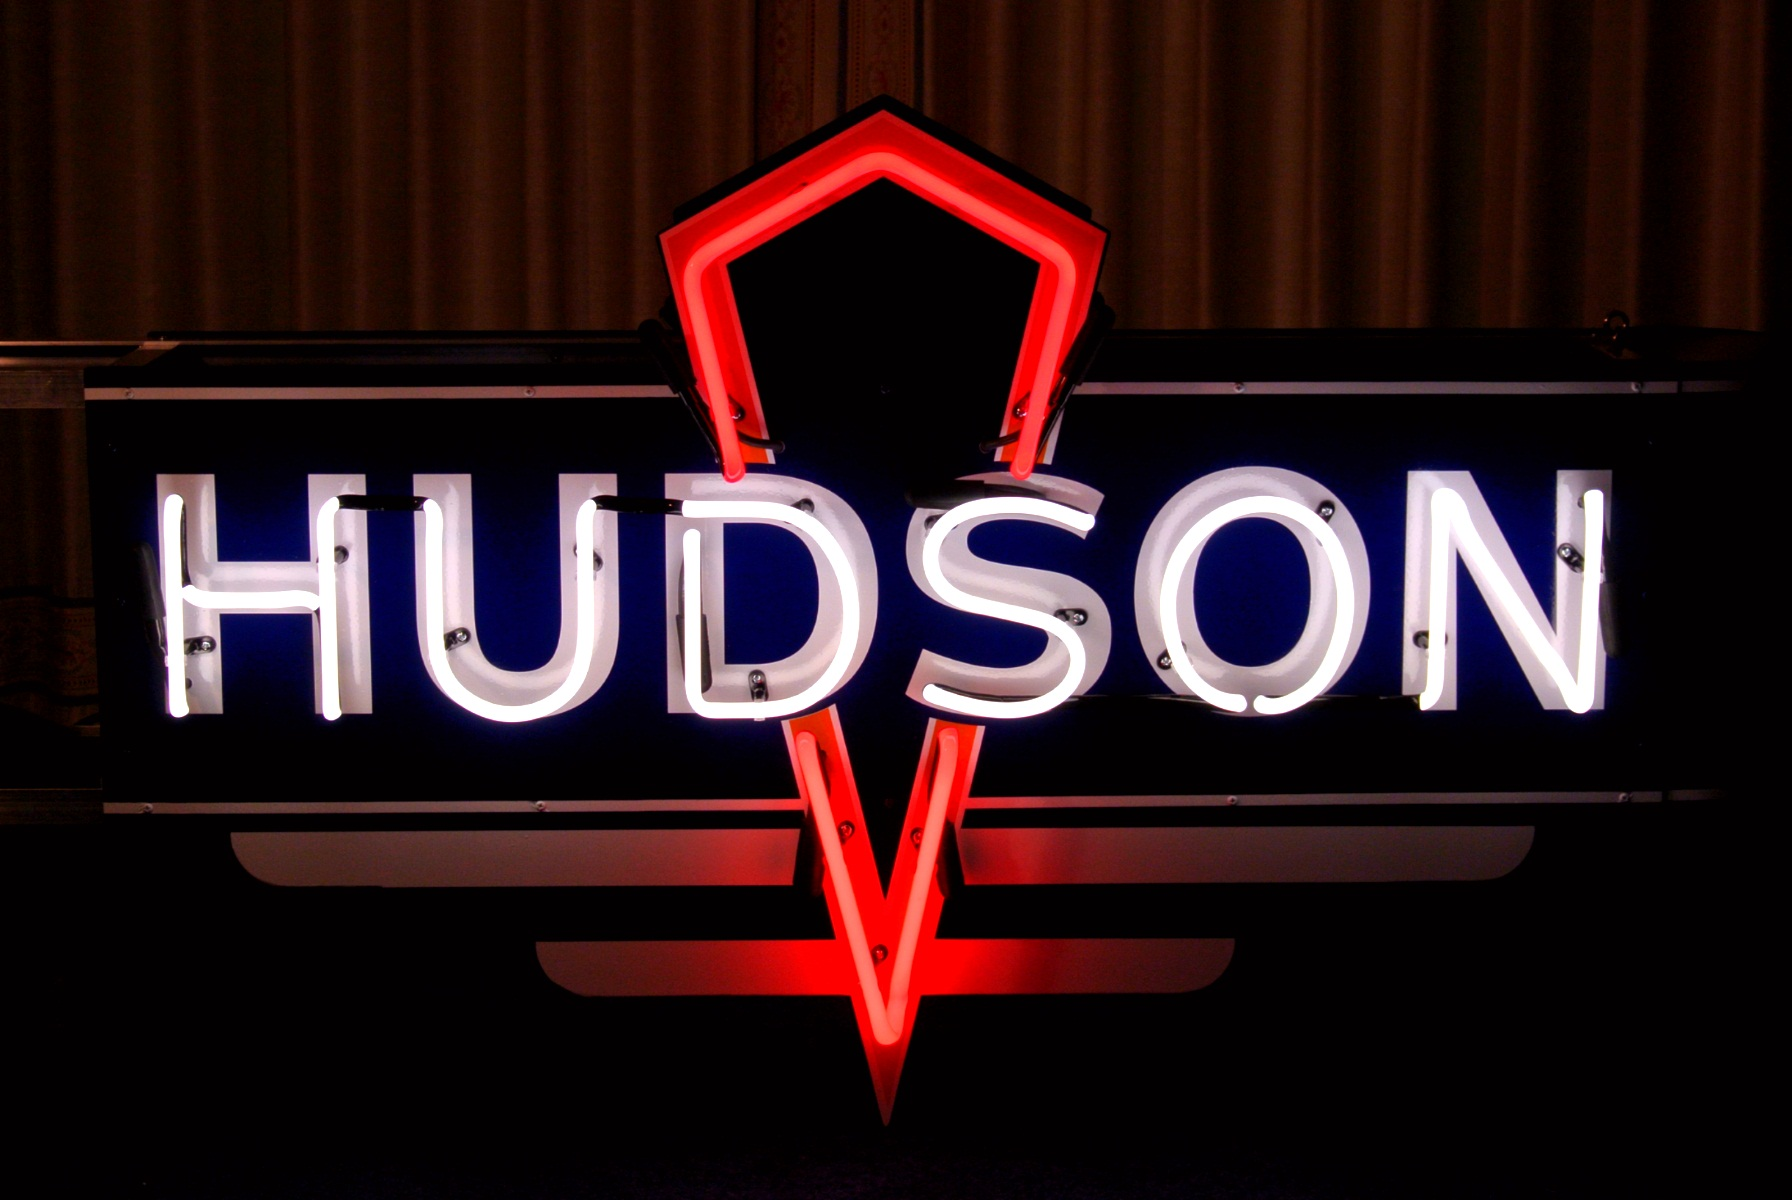 Hudson Dealership Neon Signs - by John Barton - BartonNeonMagic.com